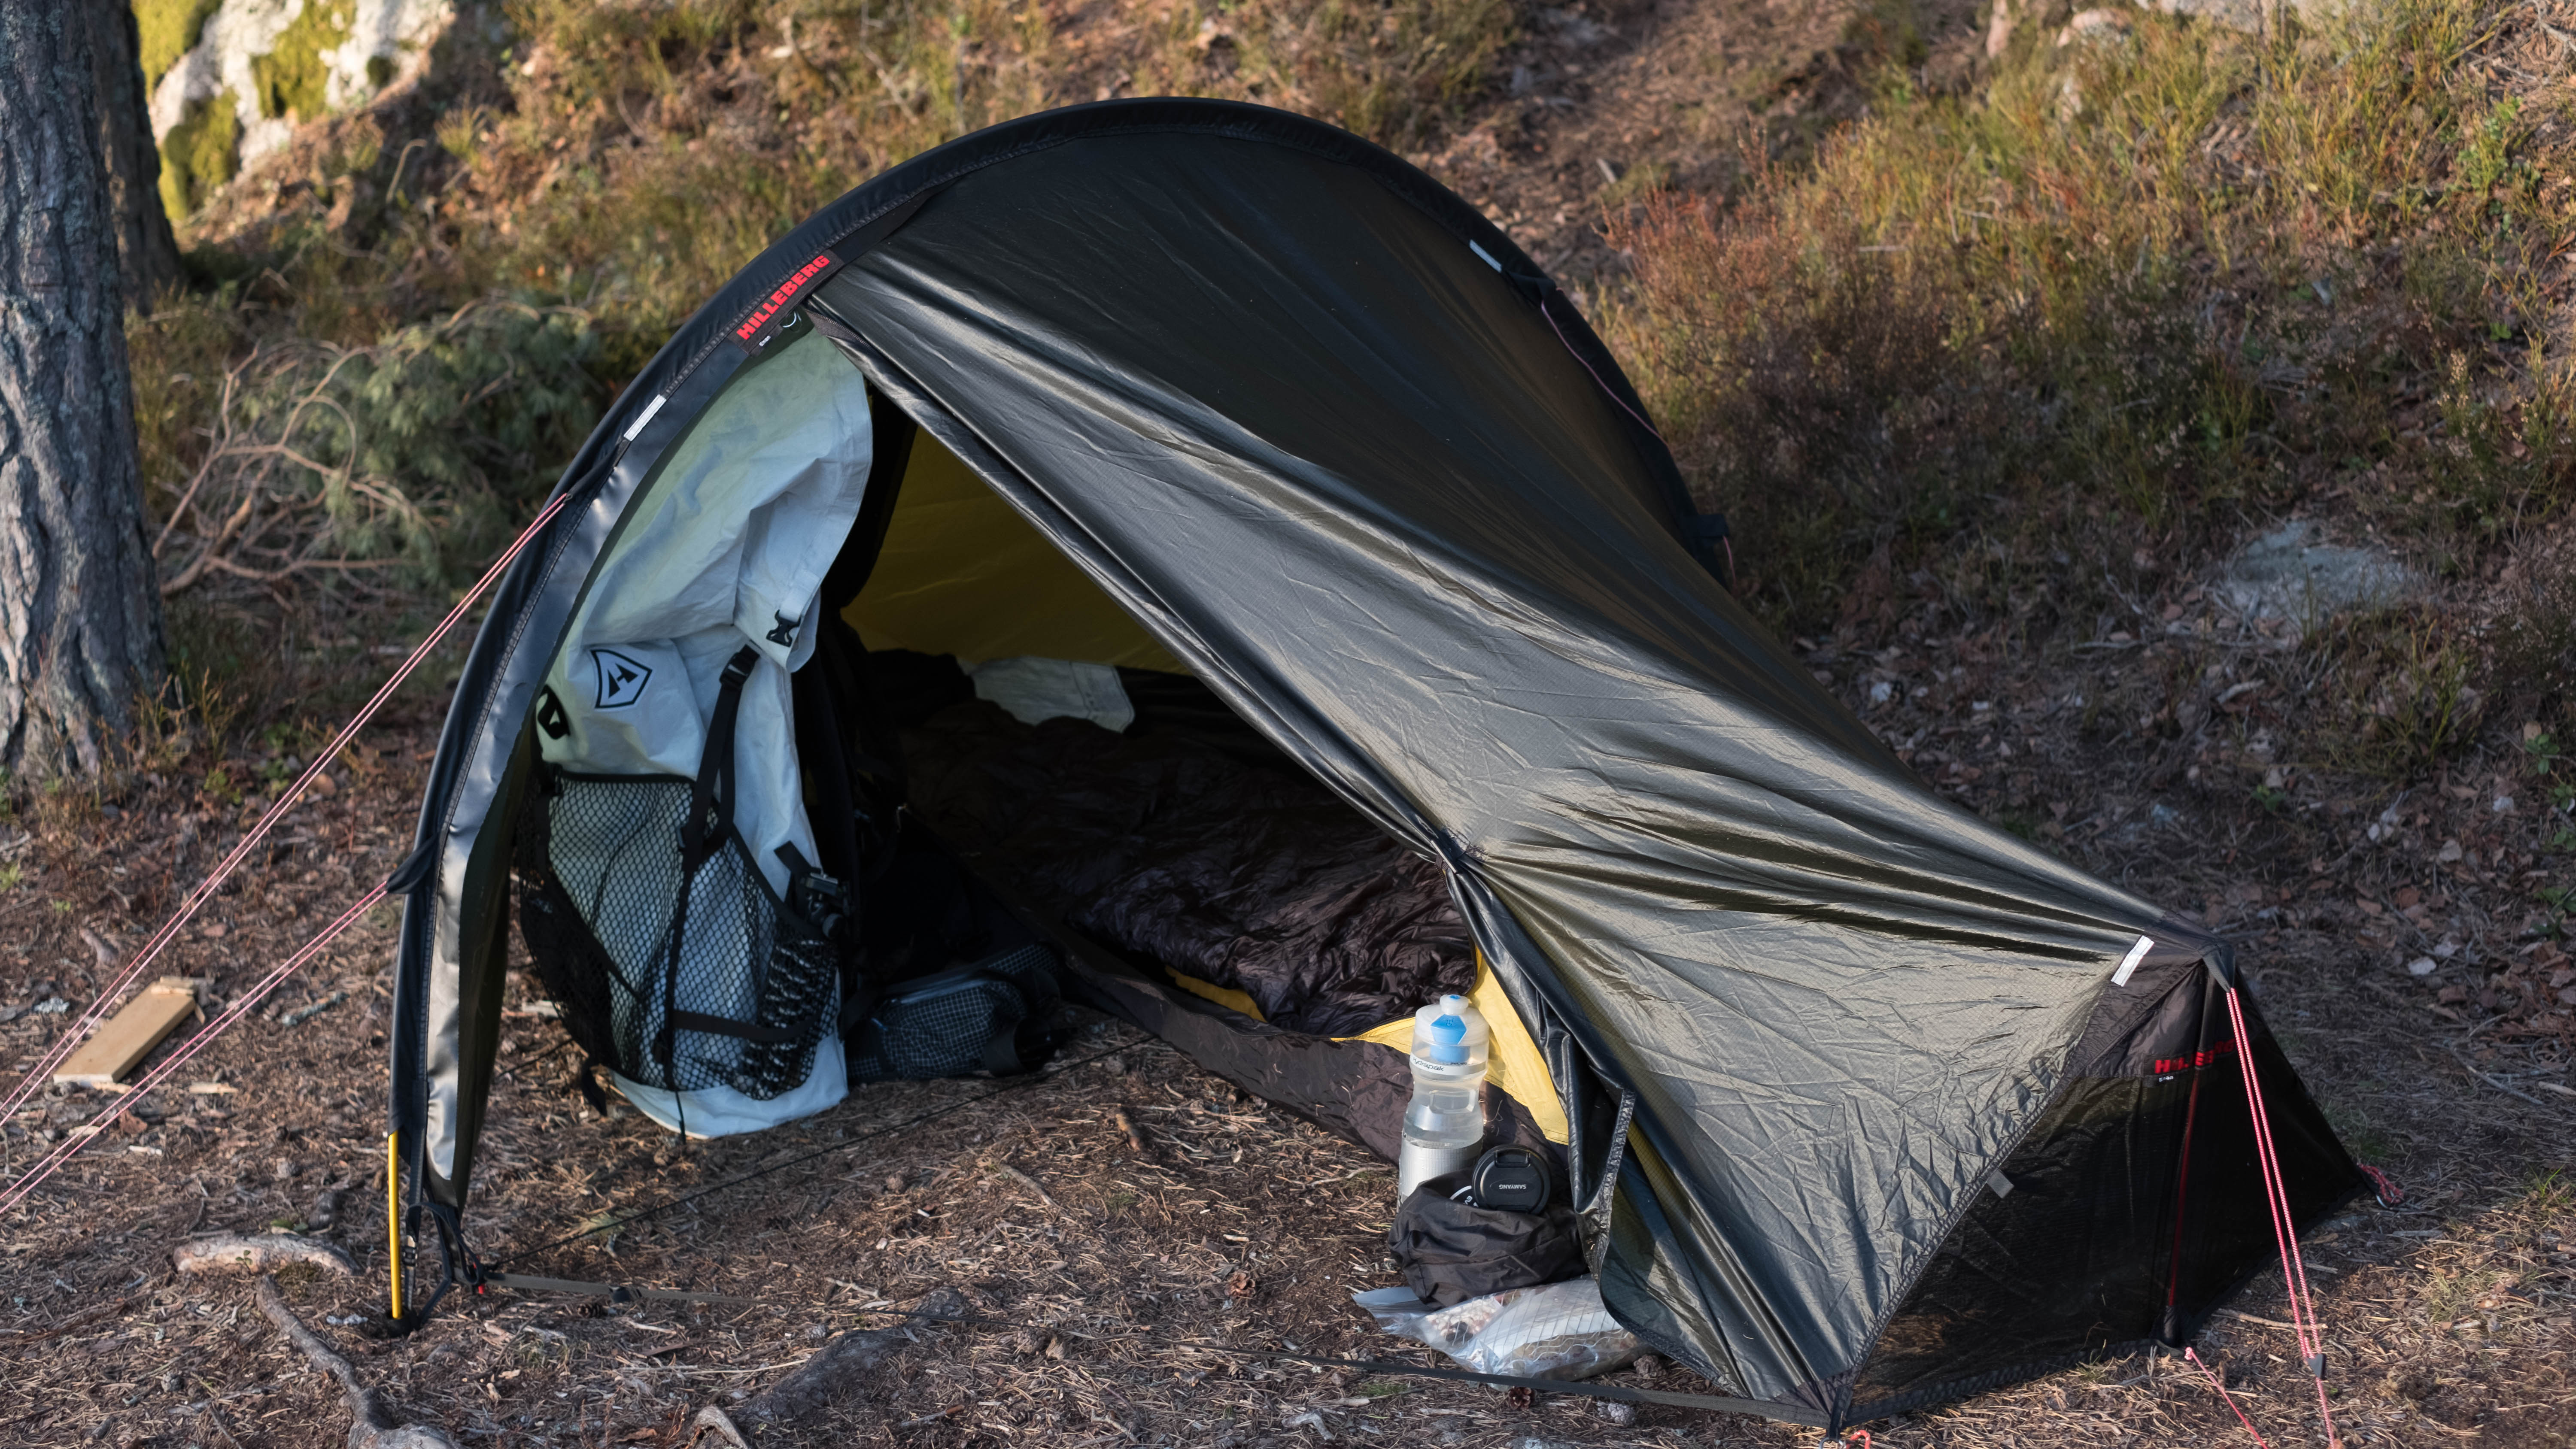 The Hilleberg Enan really is simplistic perfection. An excellent one man tent & Gear review: Hilleberg Enan u2013 Ultralight and Comfortable